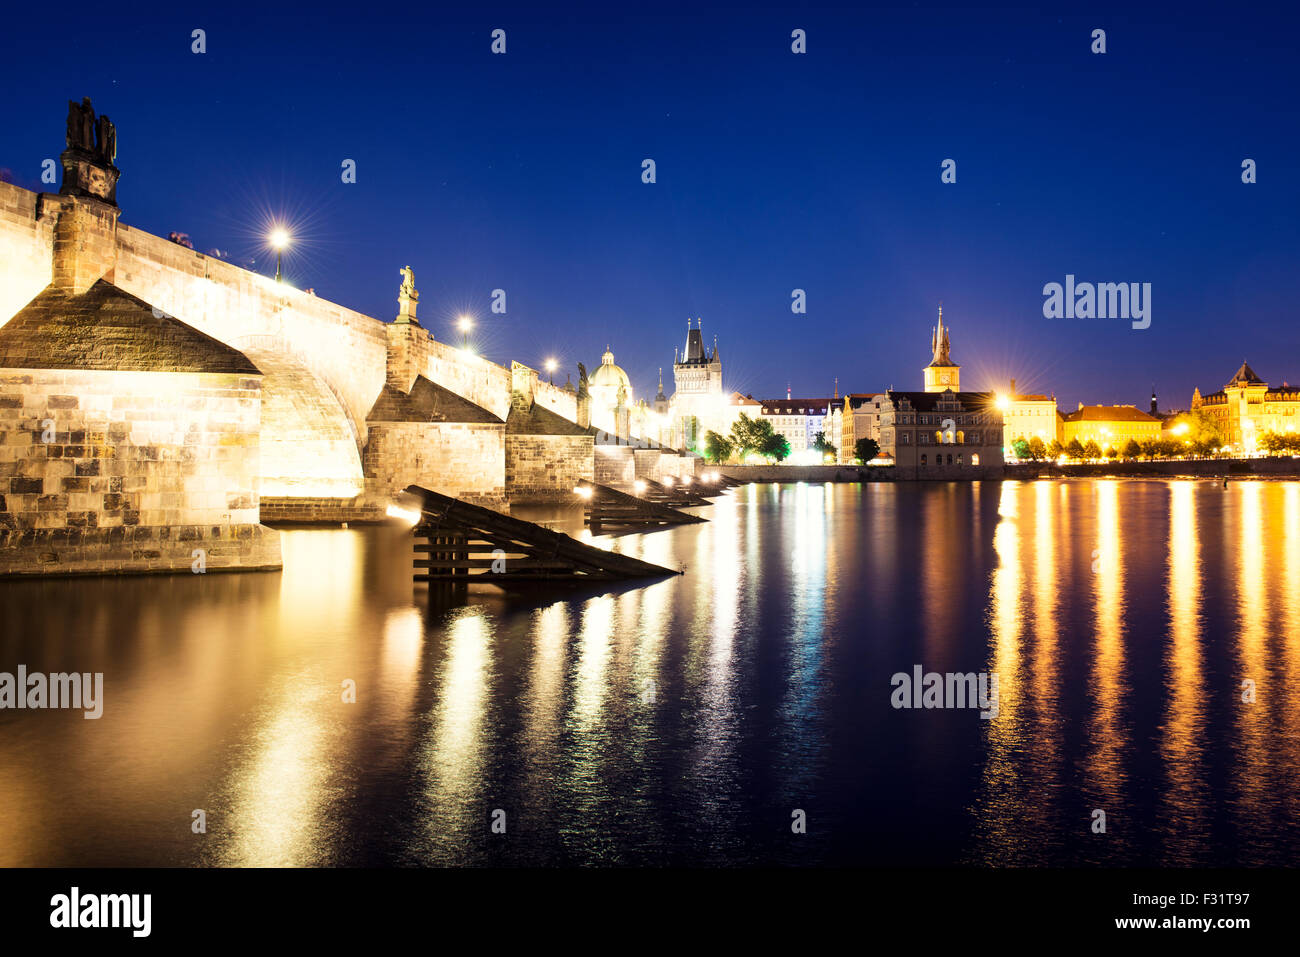 Night view of colorful old town and Charles Bridge with river Vltava, Prague, Czech Republic - Stock Image